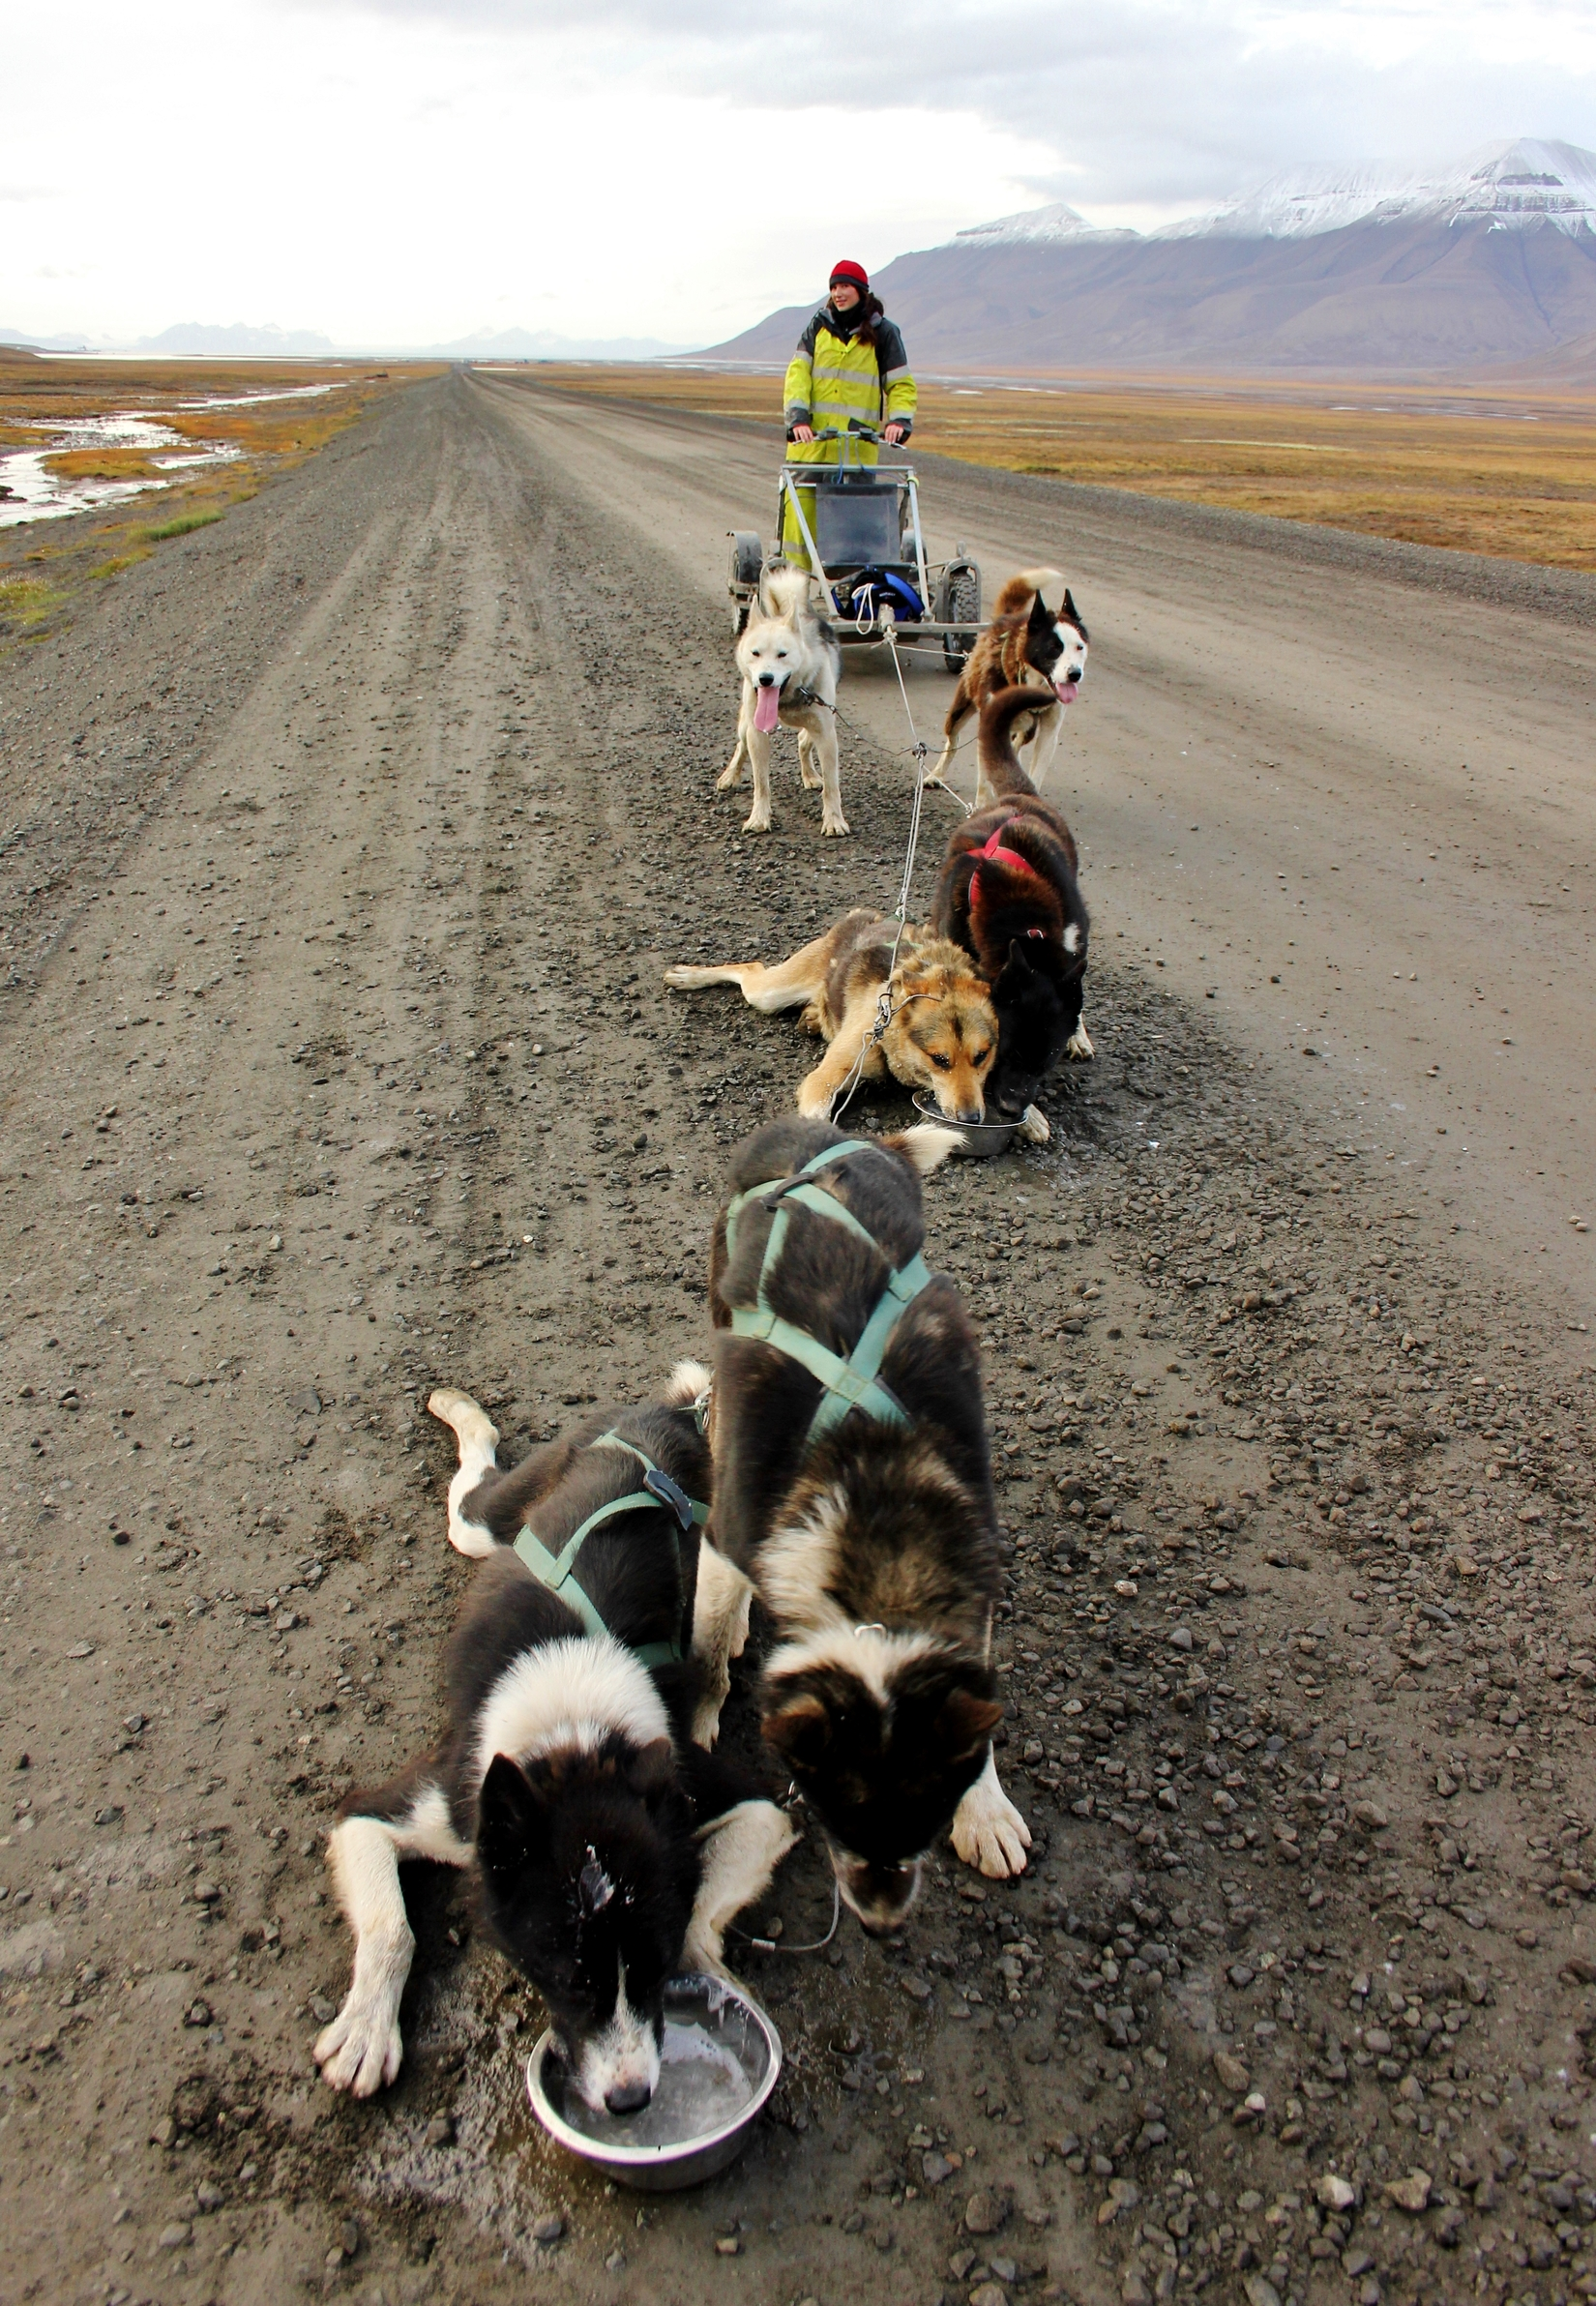 Pack of husky dogs in Svalbard, Norway